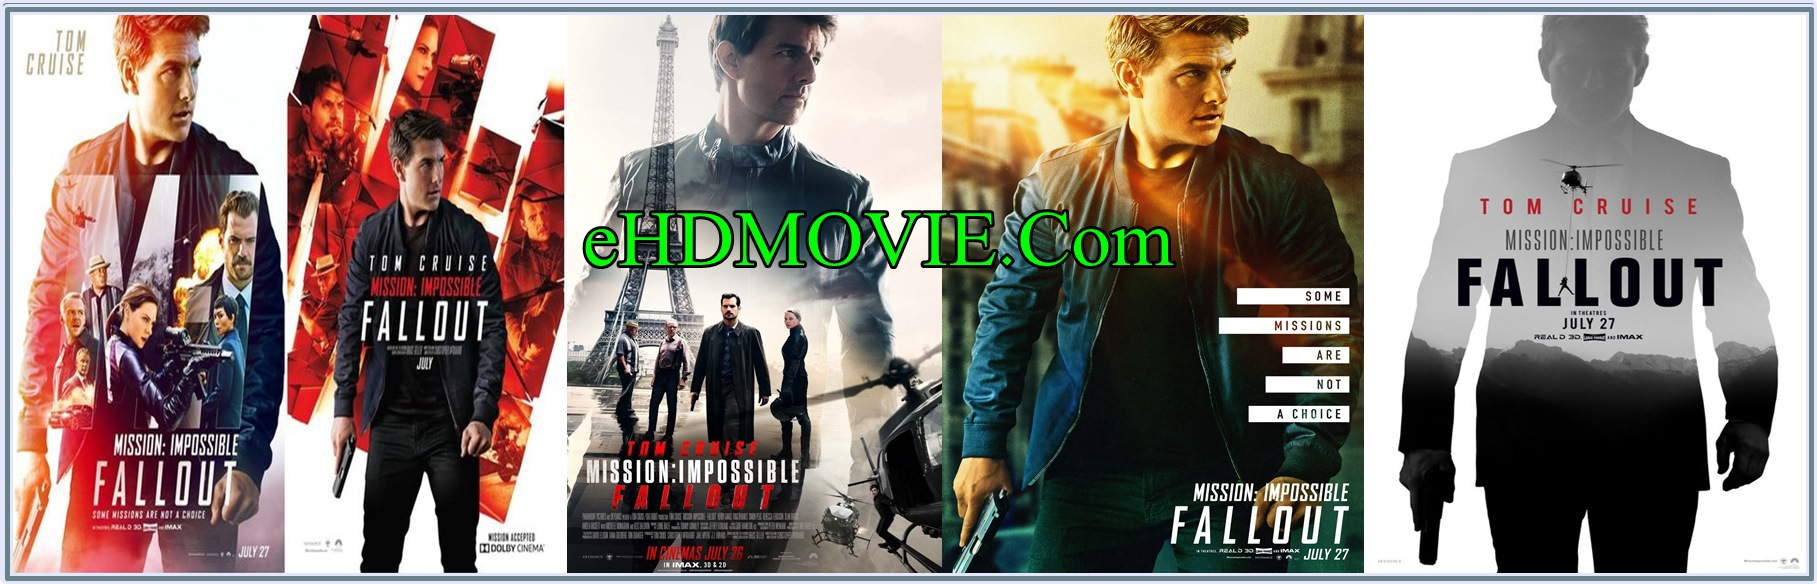 Mission Impossible Fallout 2018 Full Movie Dual Audio [Hindi – English] 1080p - 720p - HEVC - 480p ORG WEB-DL 450MB - 750MB - 1.2GB - 2.5GB ESubs Free Download